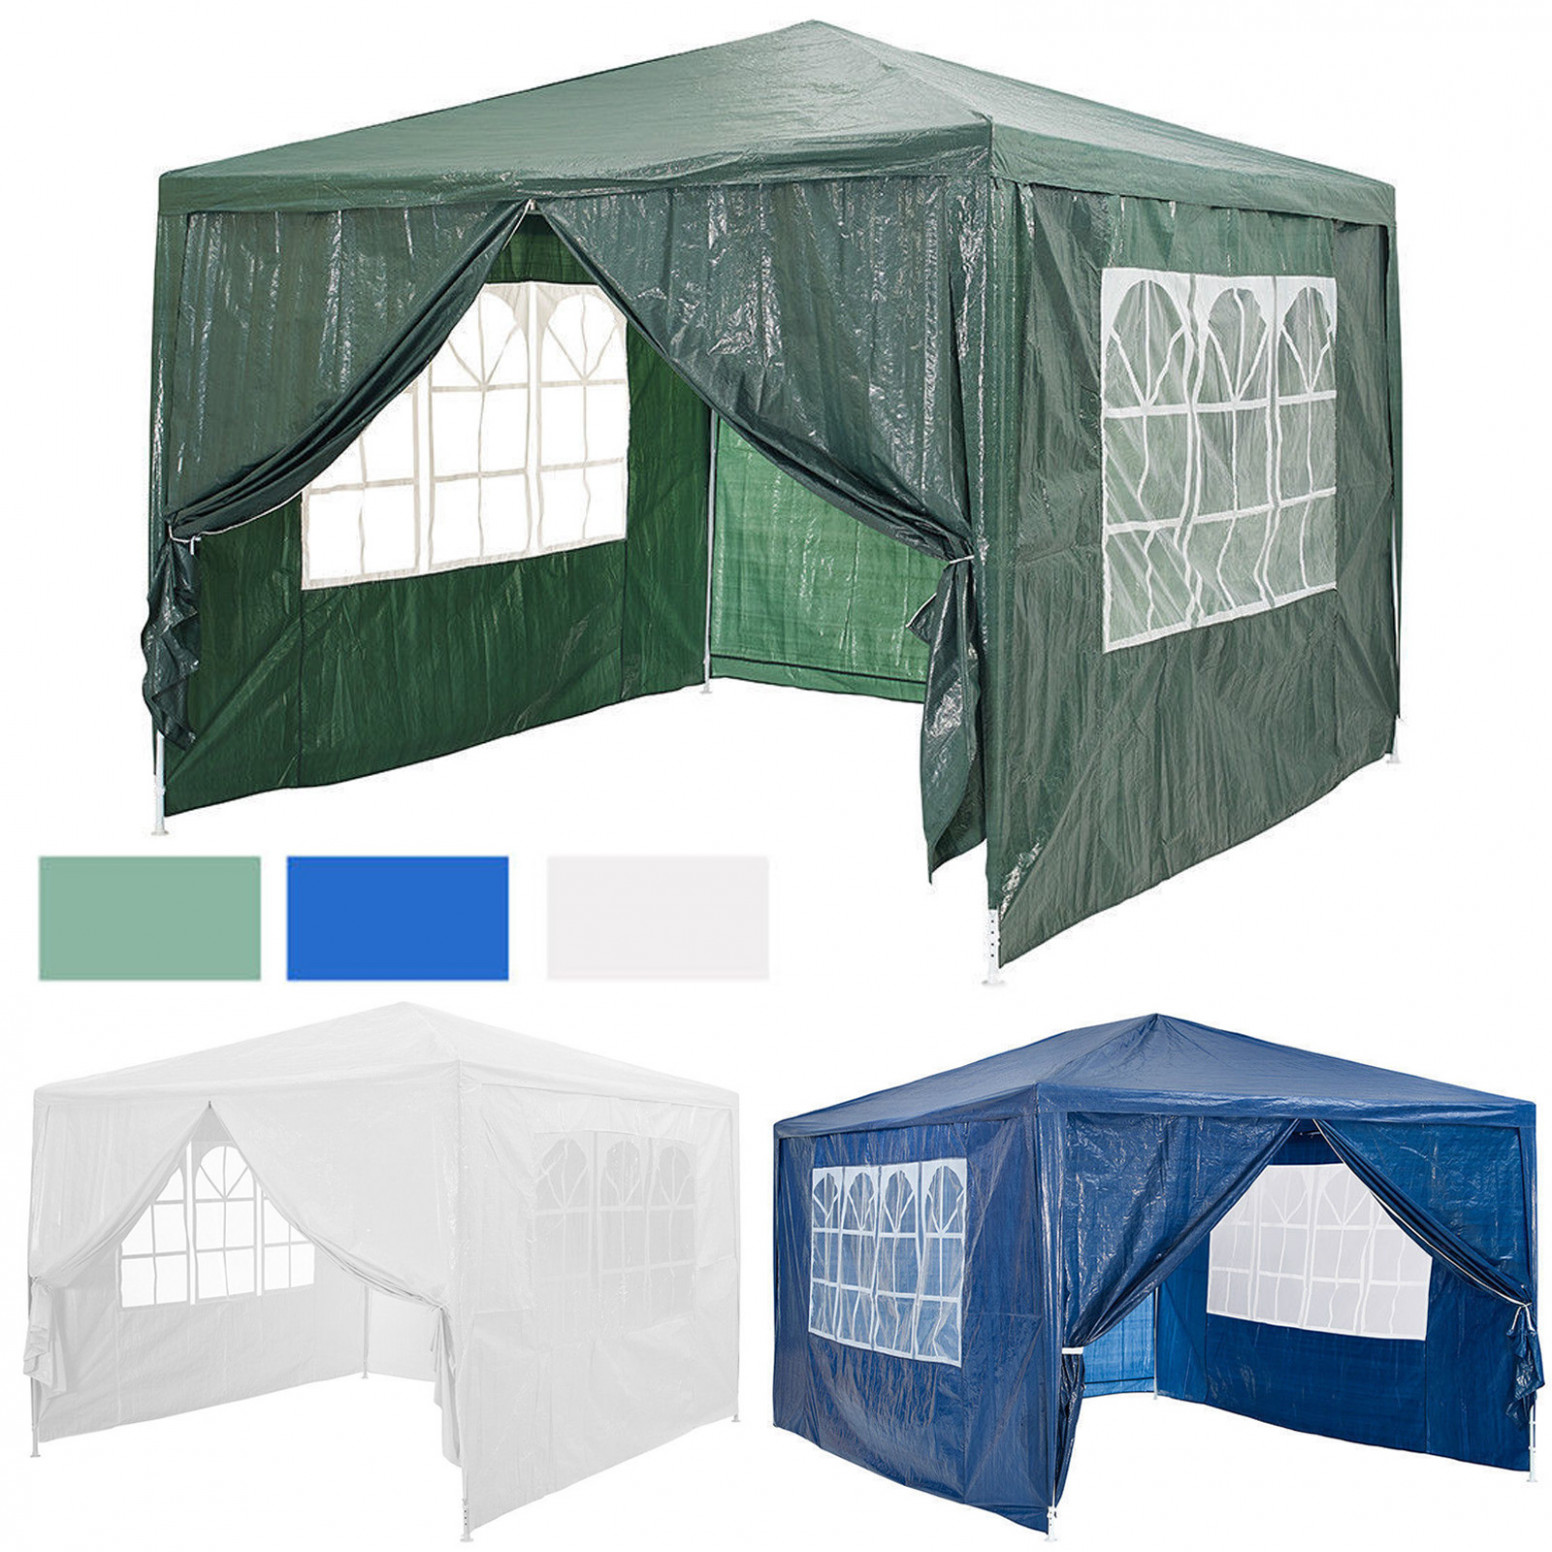 Details About 7m X 7m Outdoor Car Canopy Portable Cover Gazebo Garage Shelter Carport Tent UK Carport Tent In Guangzhou